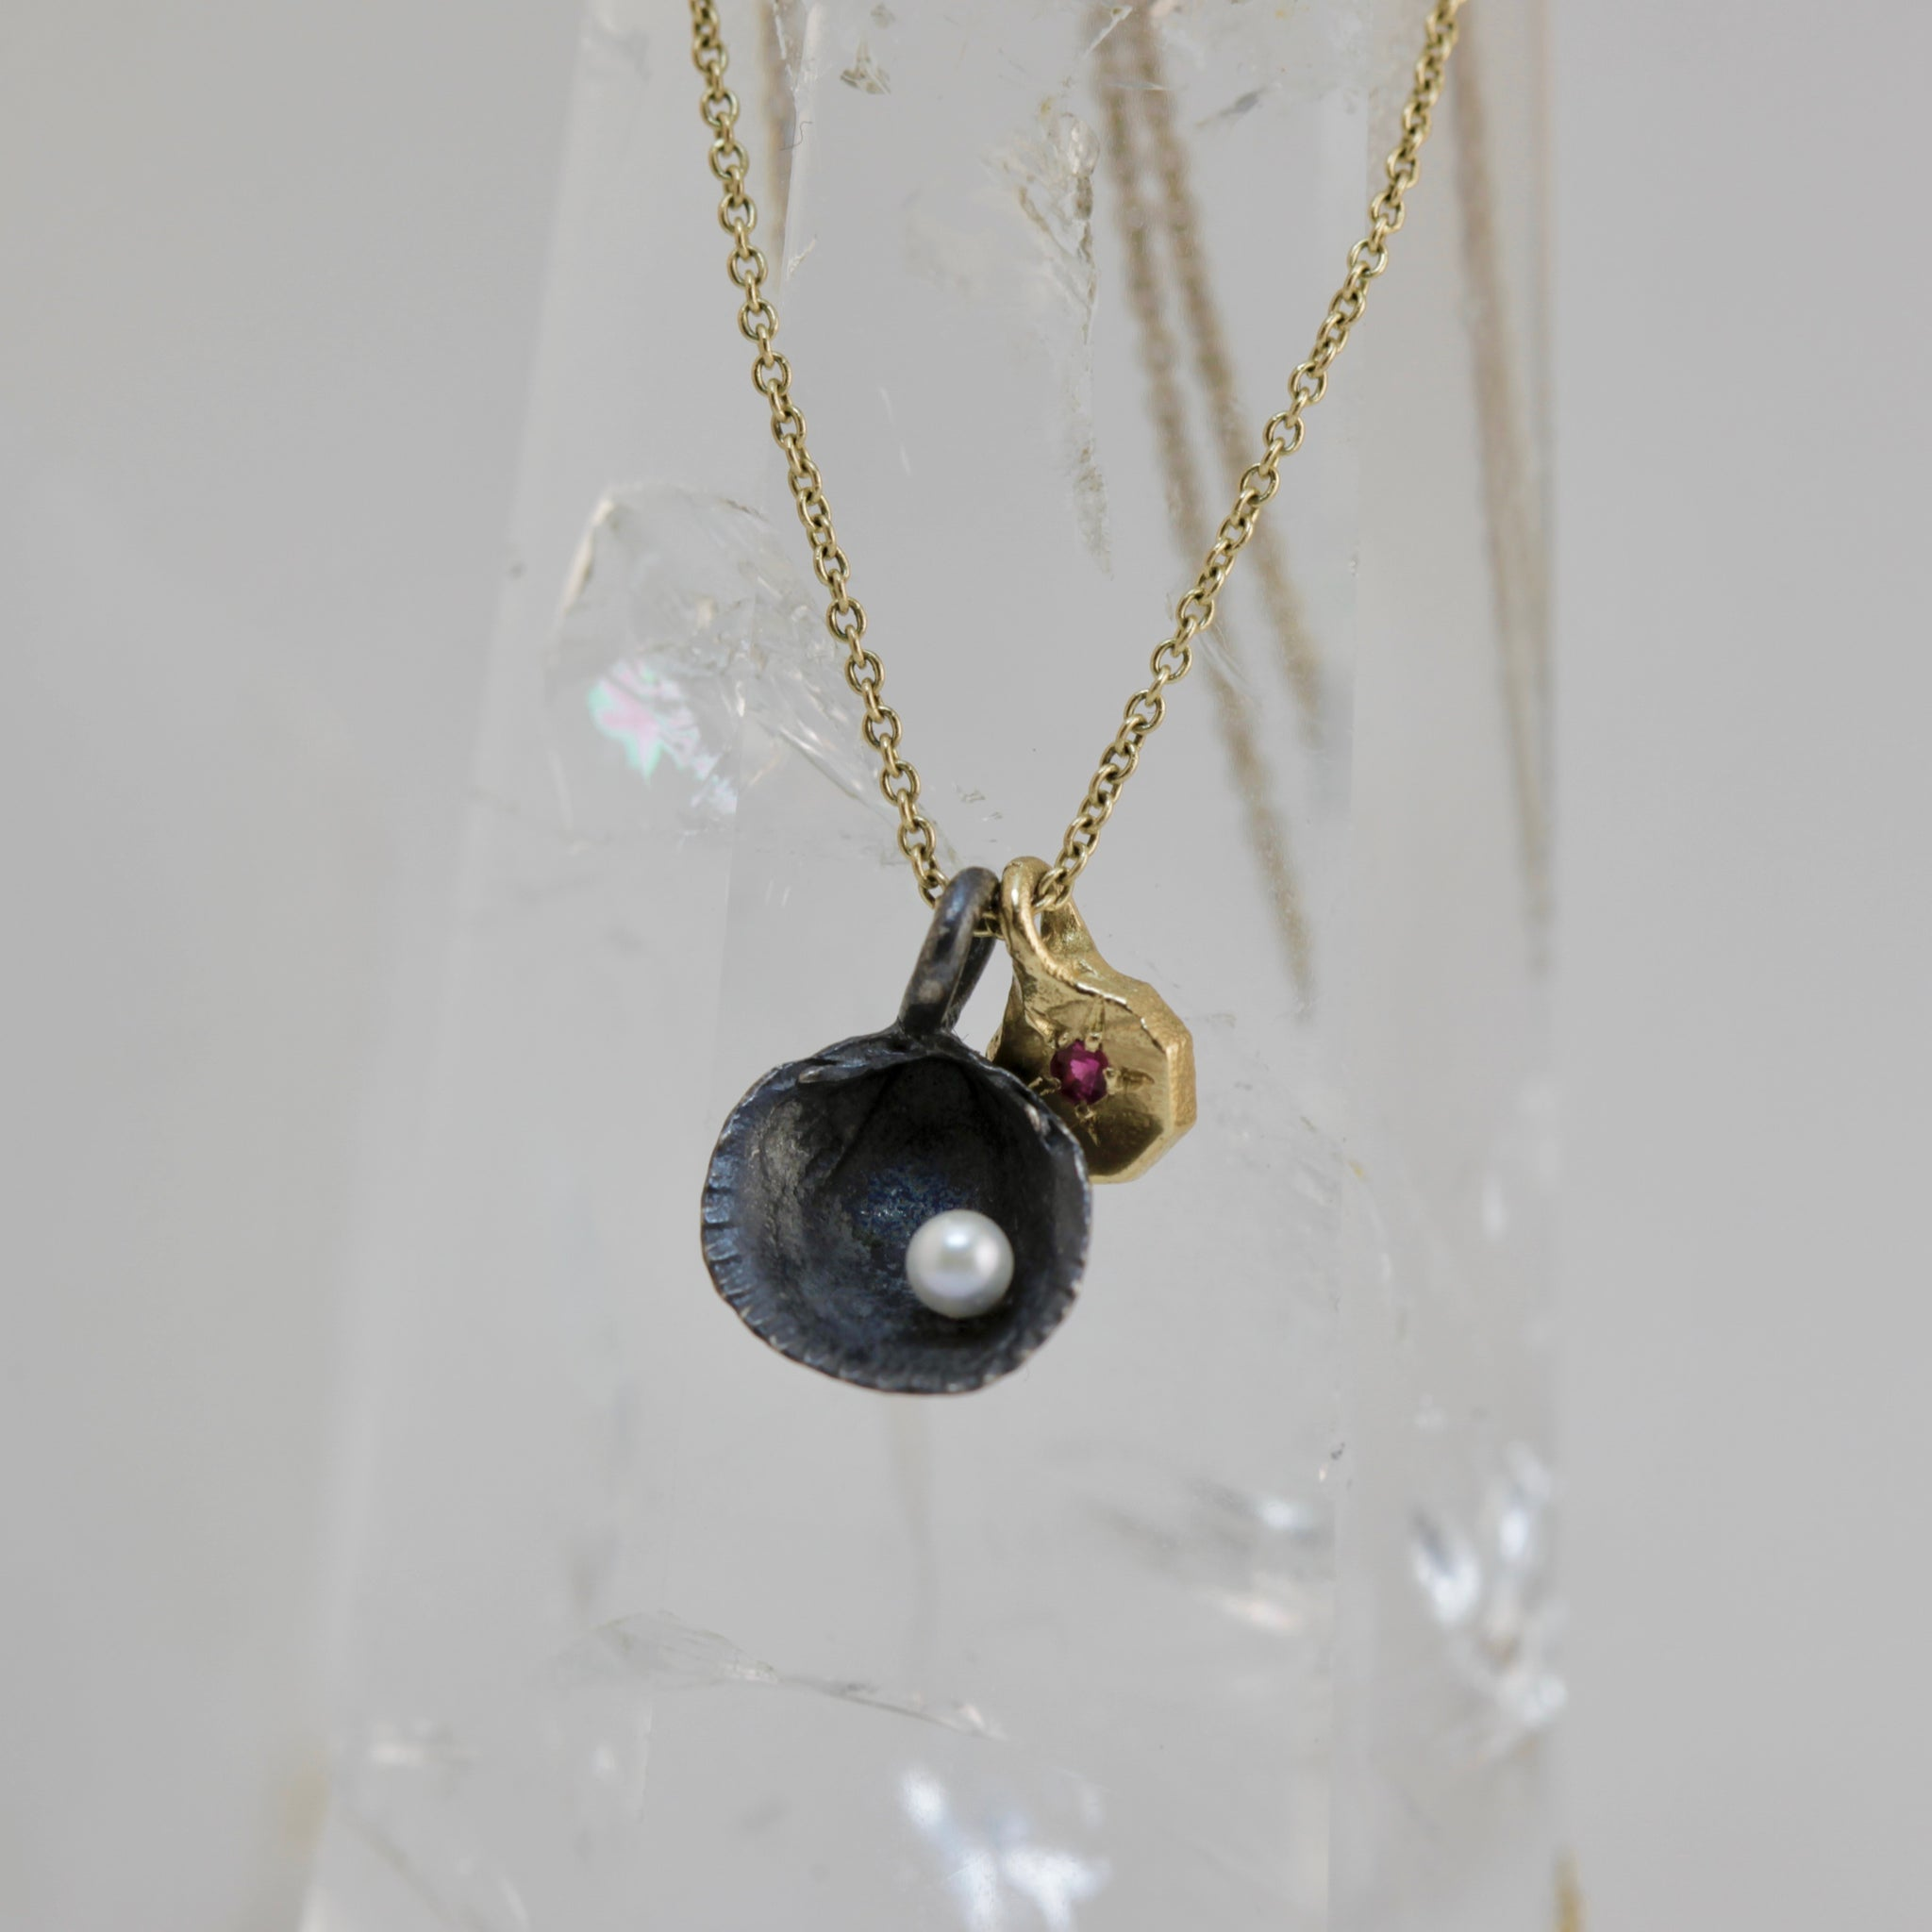 Midnight Siren Pendant, oxidised black shell with pearl, 9ct gold charm with ruby